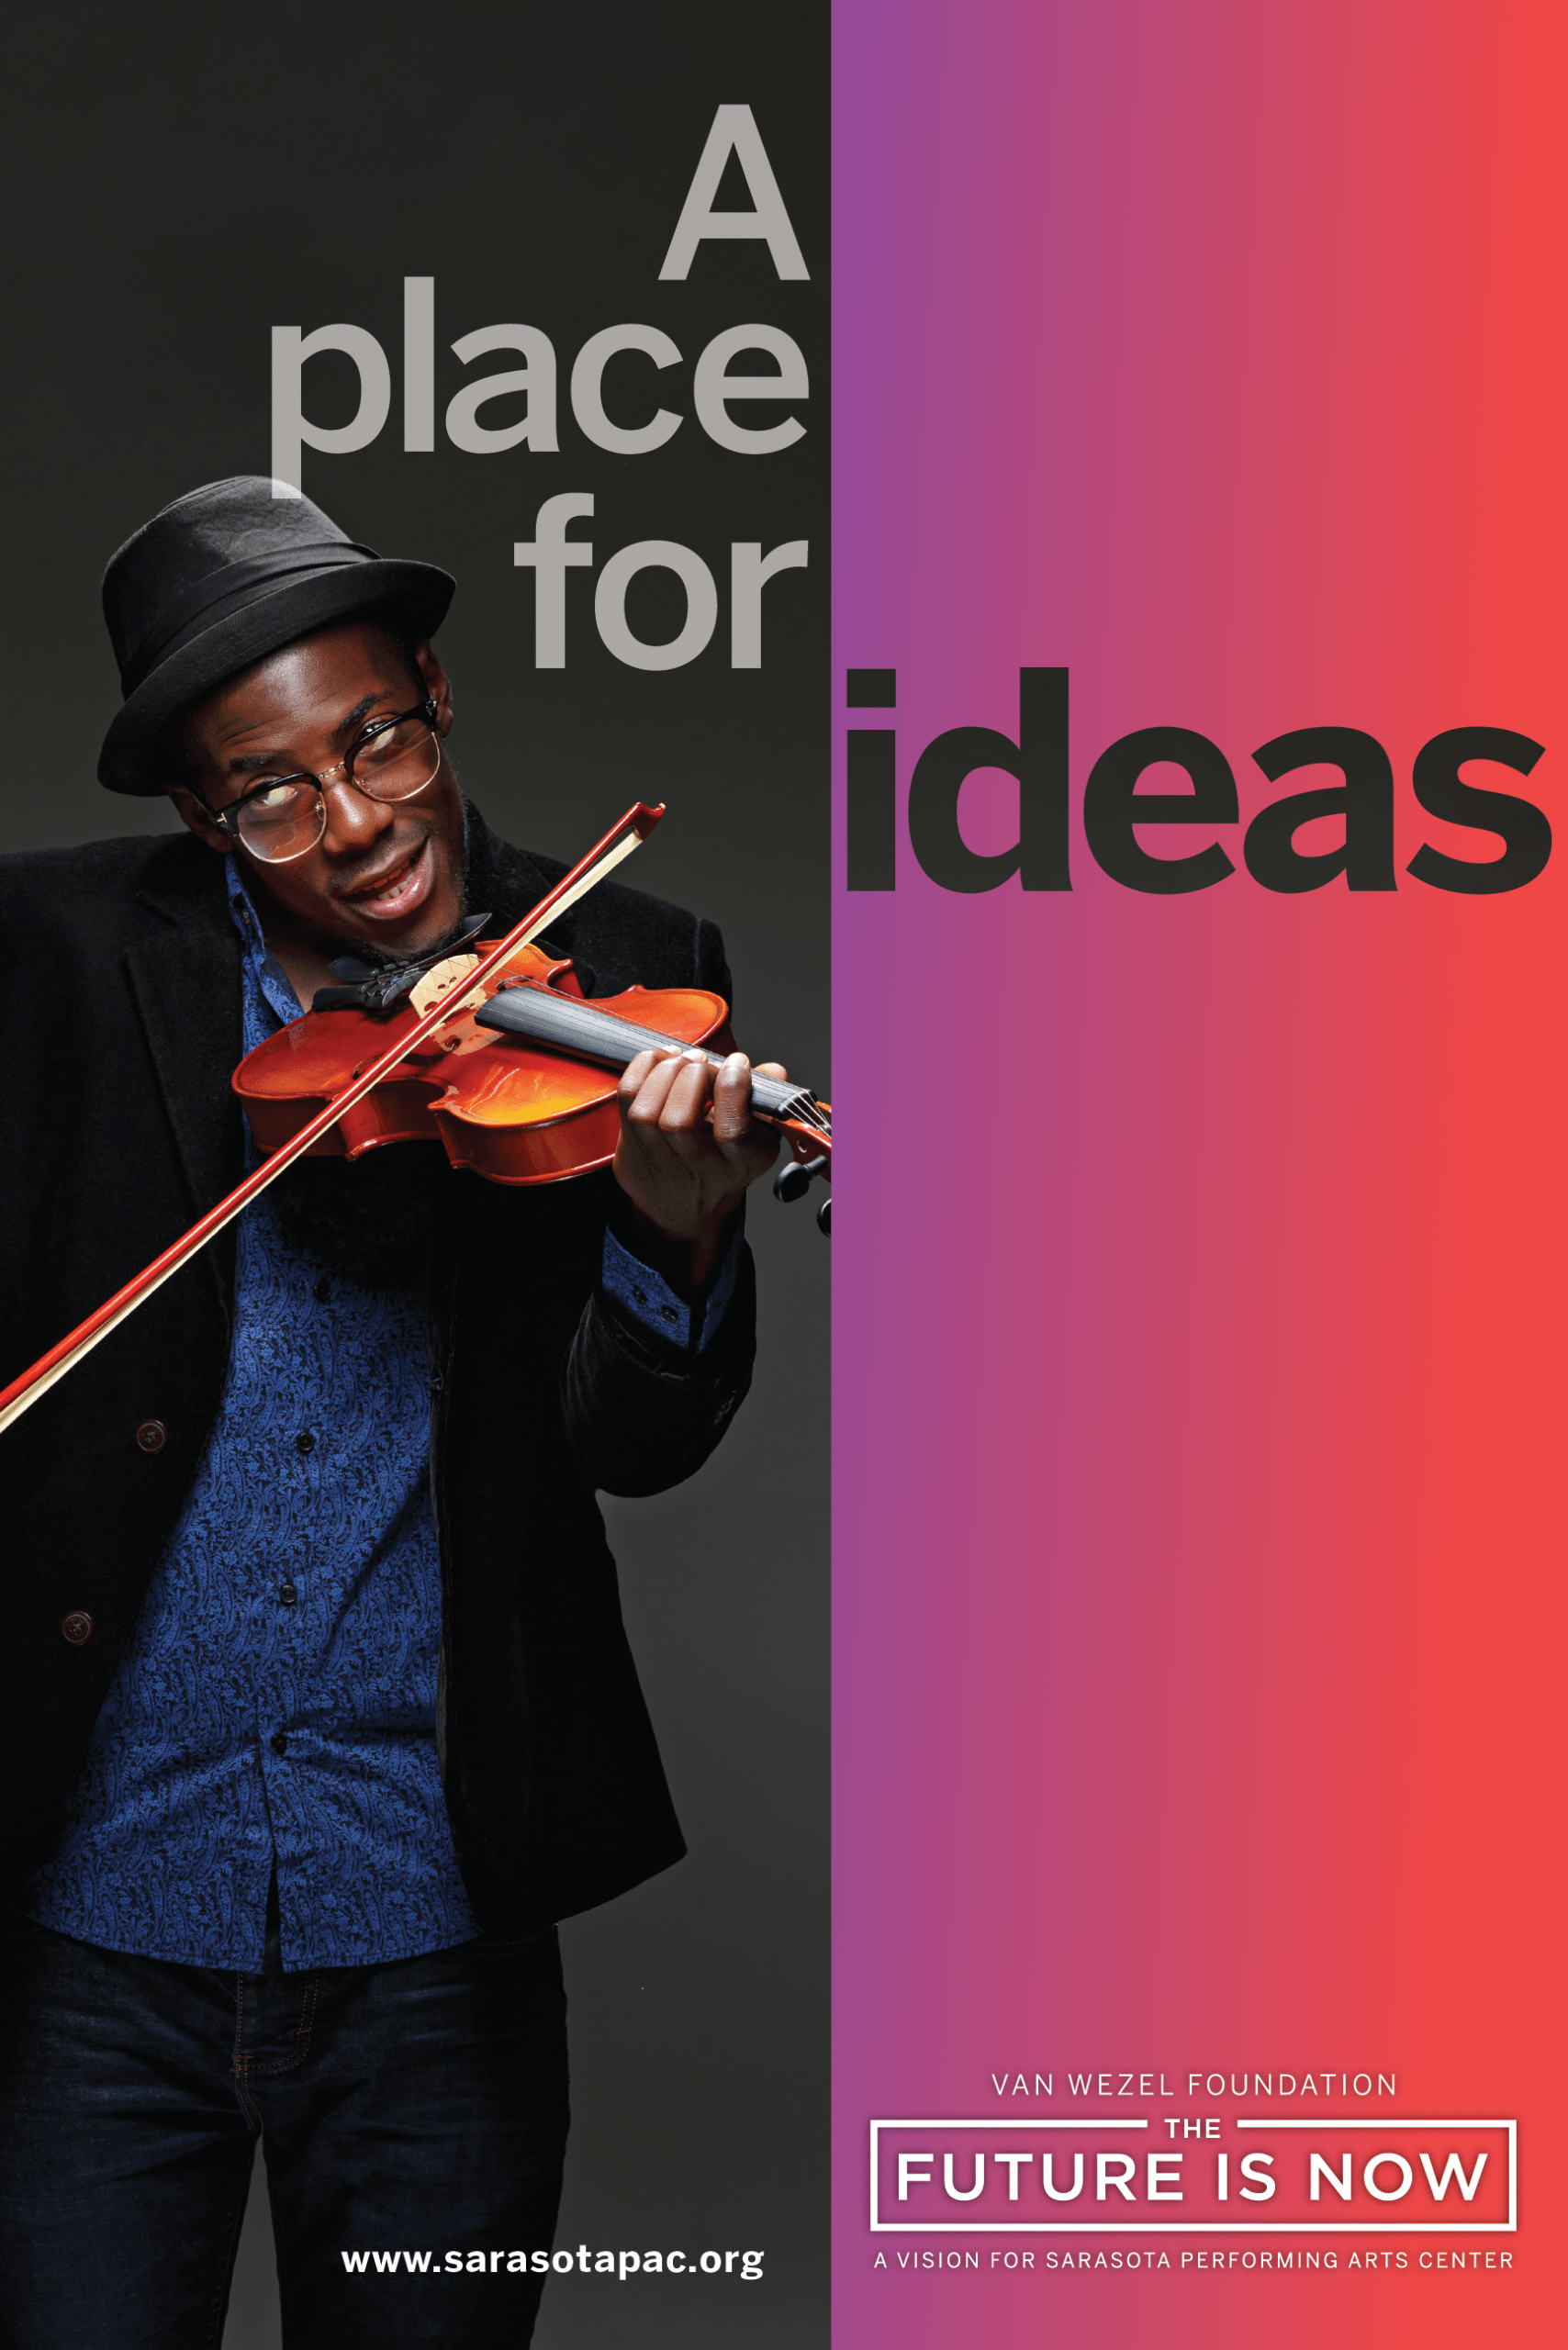 spac - a place for ideas